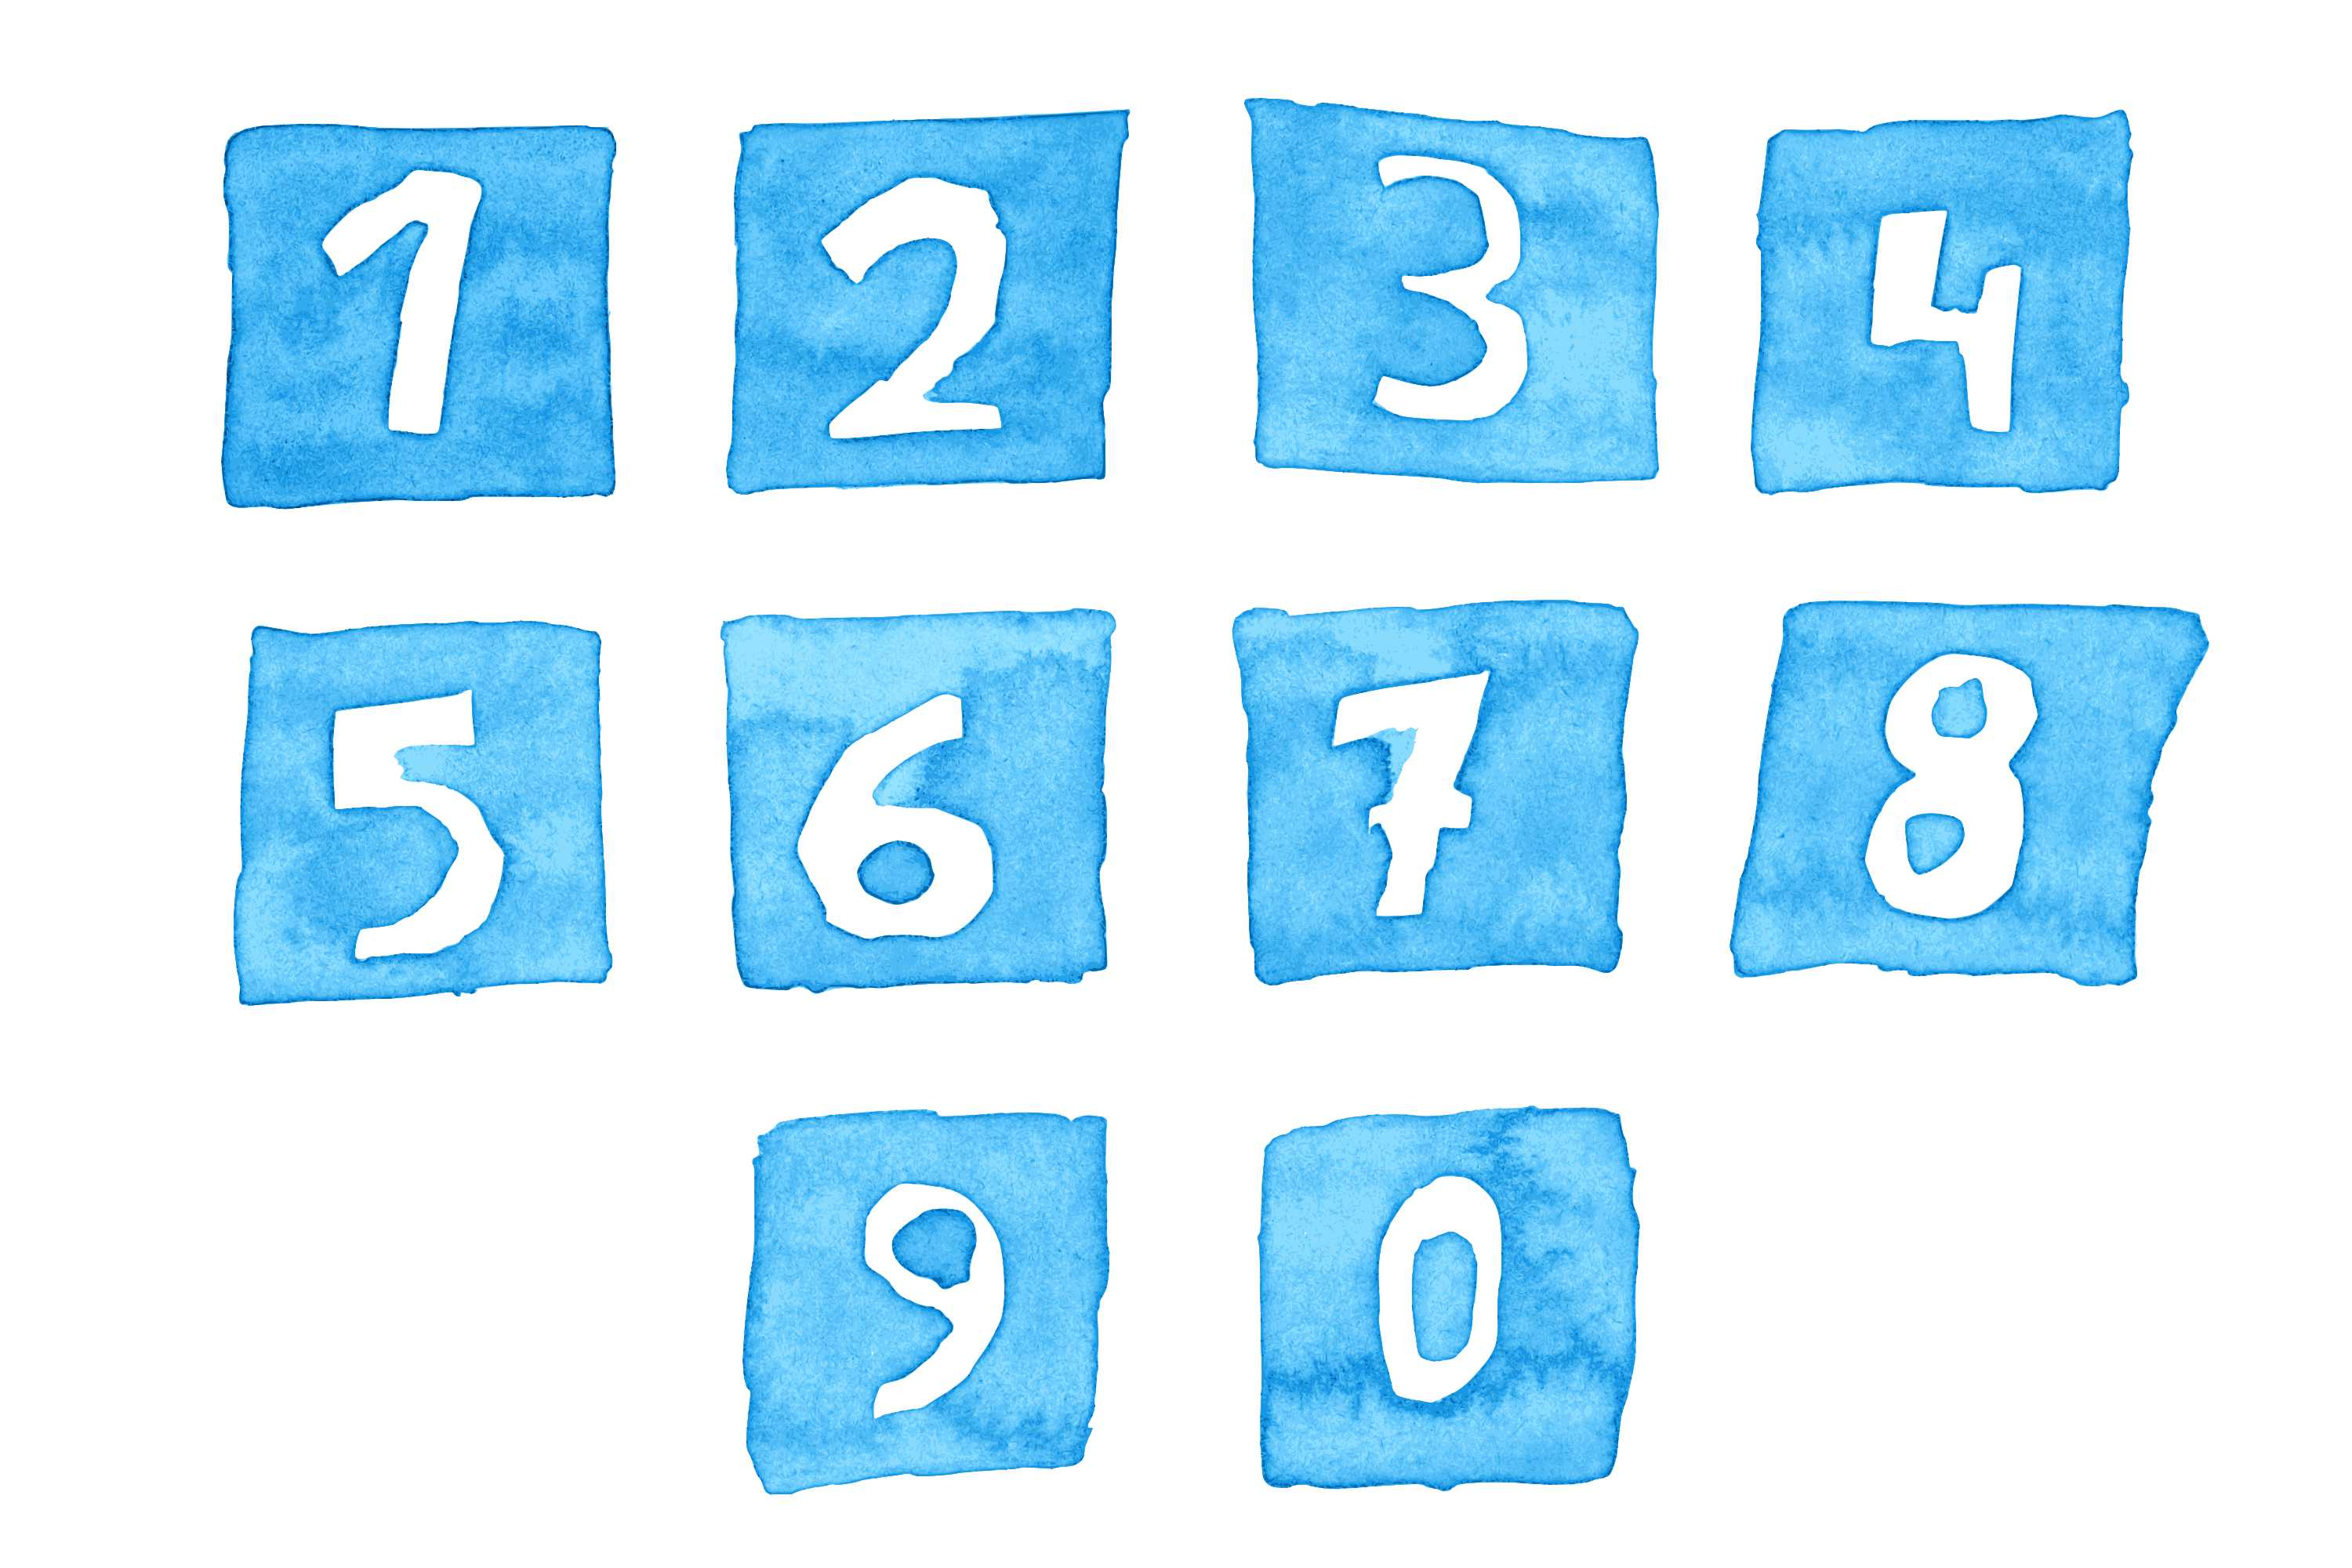 watercolor-numbers-in-square-cover.jpg